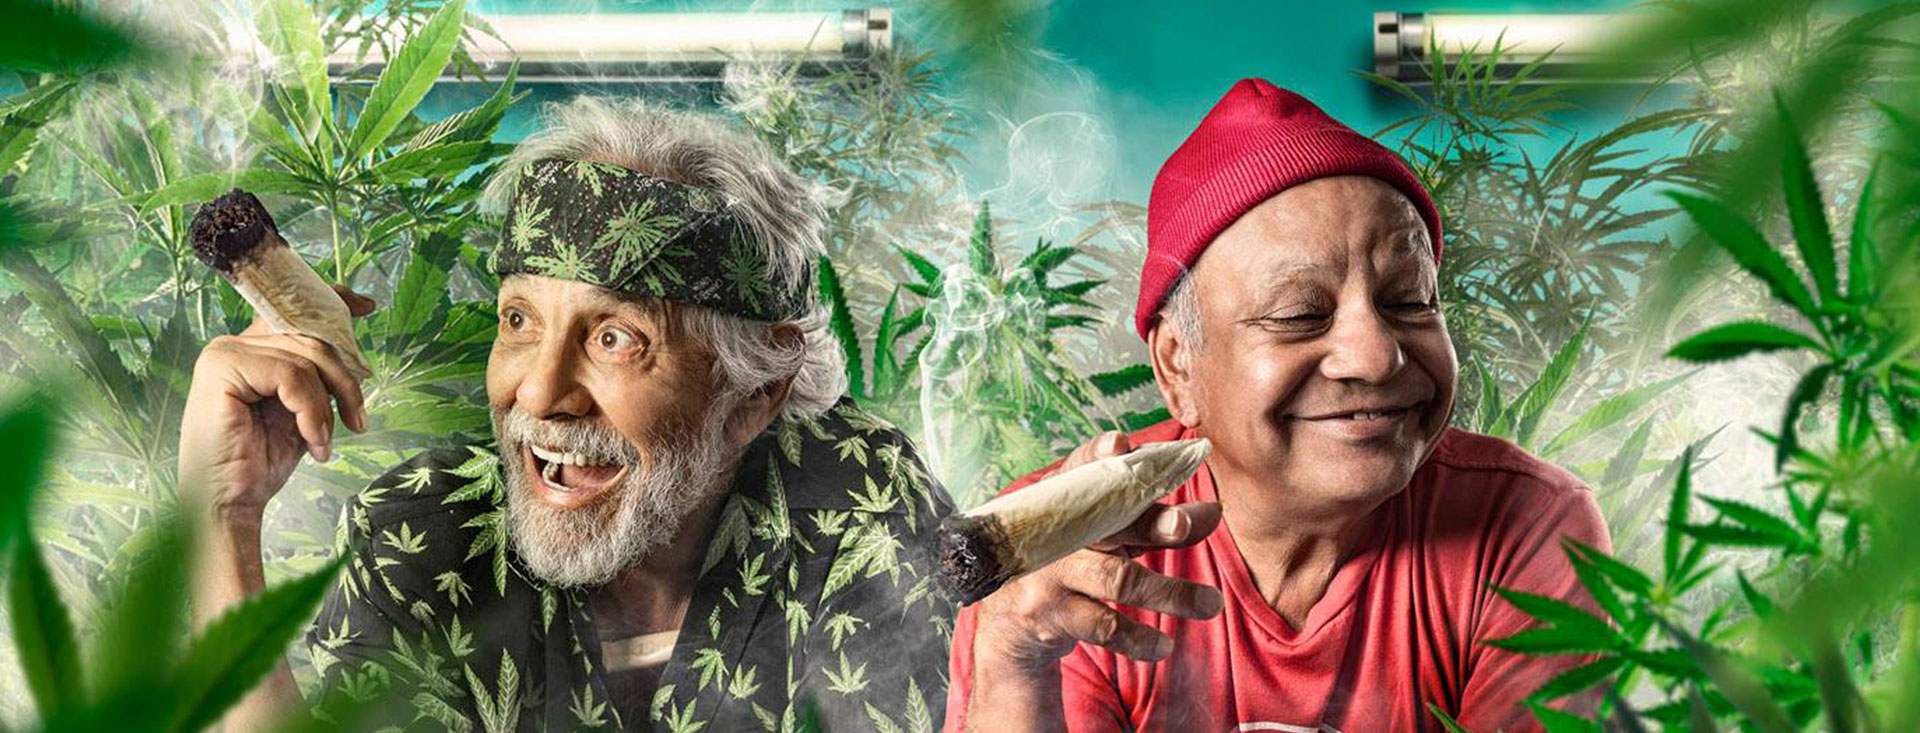 Cheech And Chong Backgrounds, Compatible - PC, Mobile, Gadgets| 1920x733 px